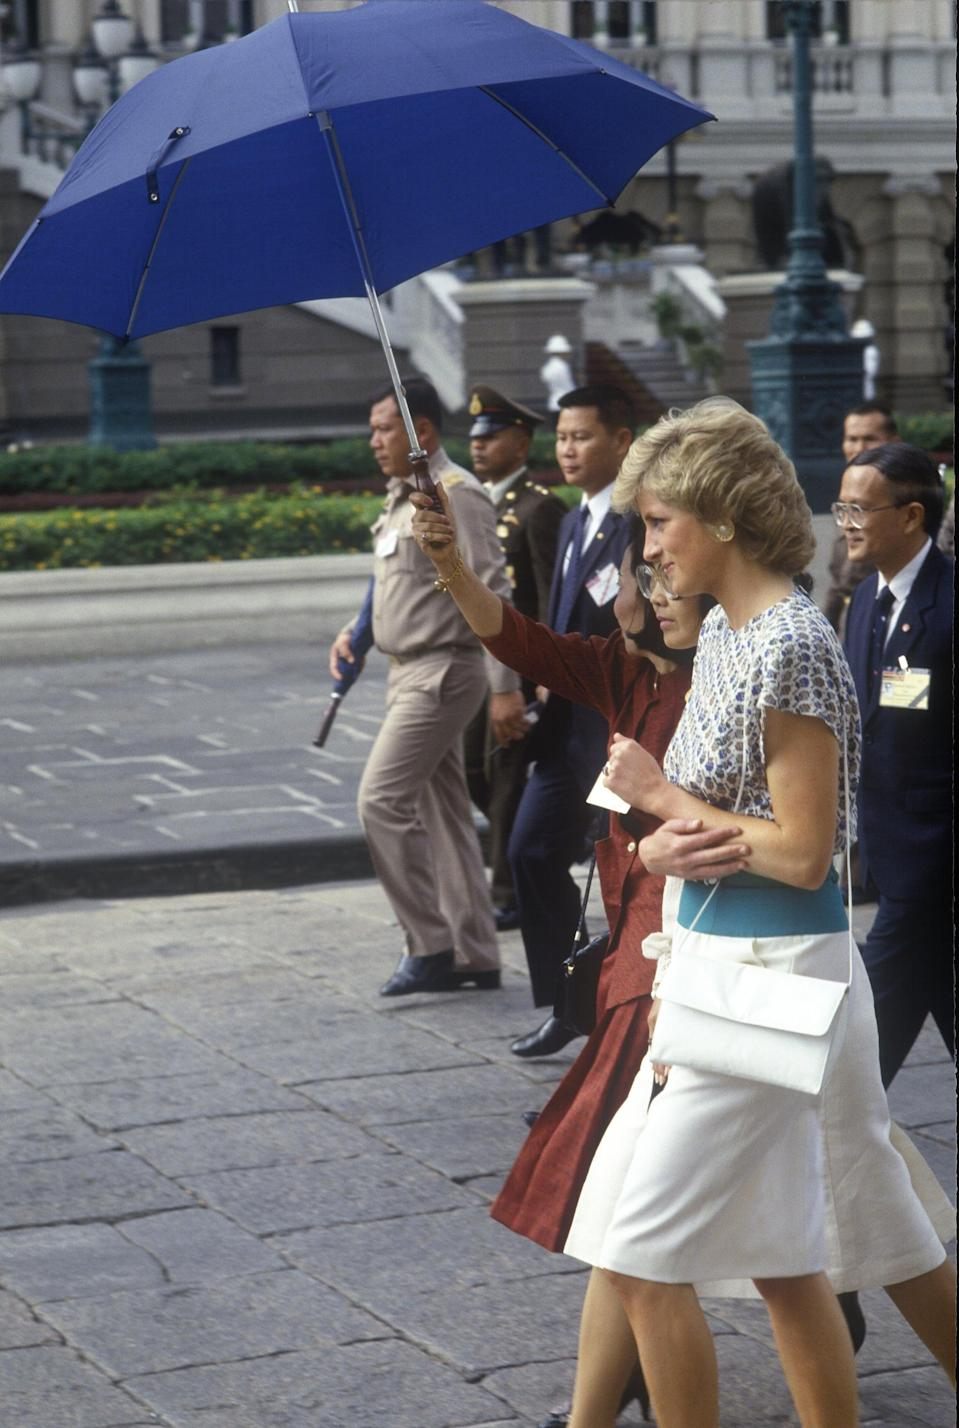 <p>Diana also owned plenty of envelope-style bags, and the one she brought on her visit to Thailand in 1988 came equipped with a convenient crossbody strap.</p>